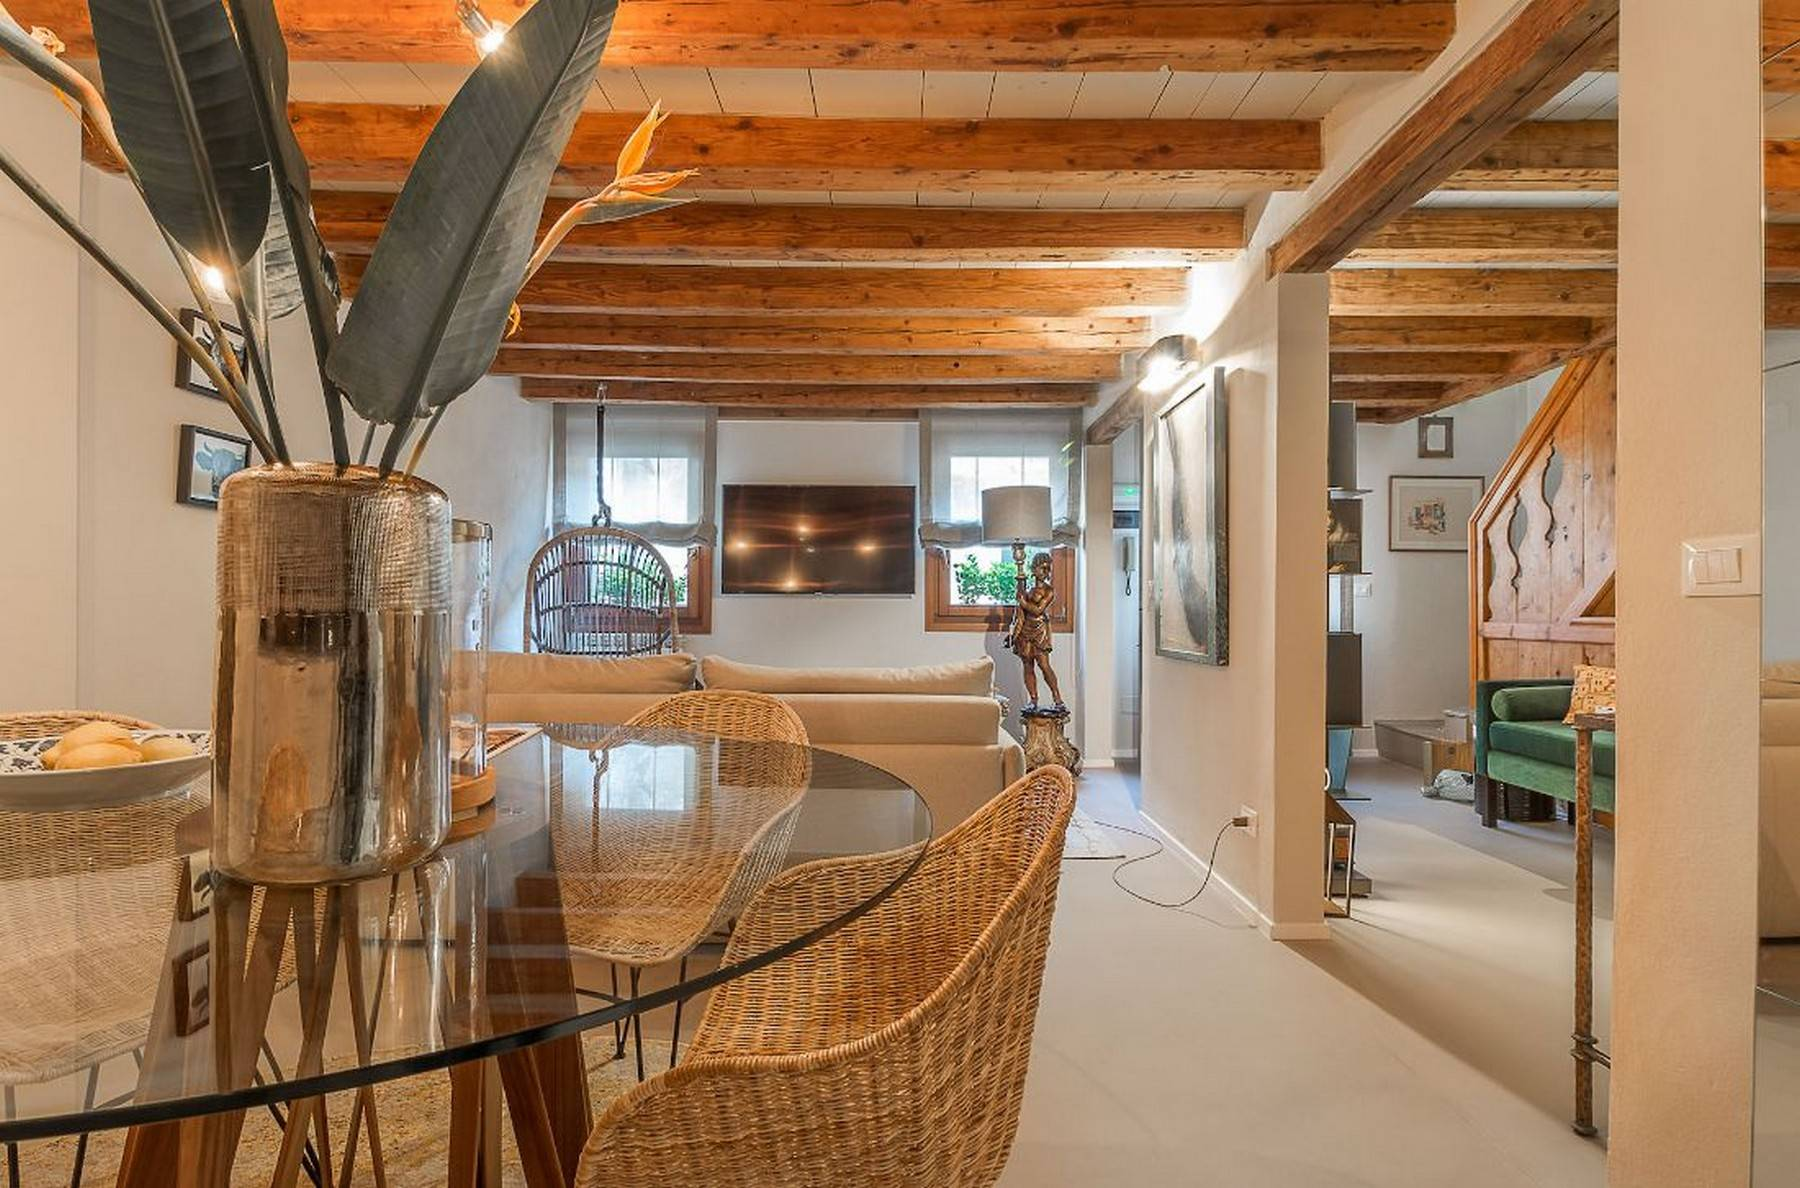 Castello design duplex with charming roof terrace - 6